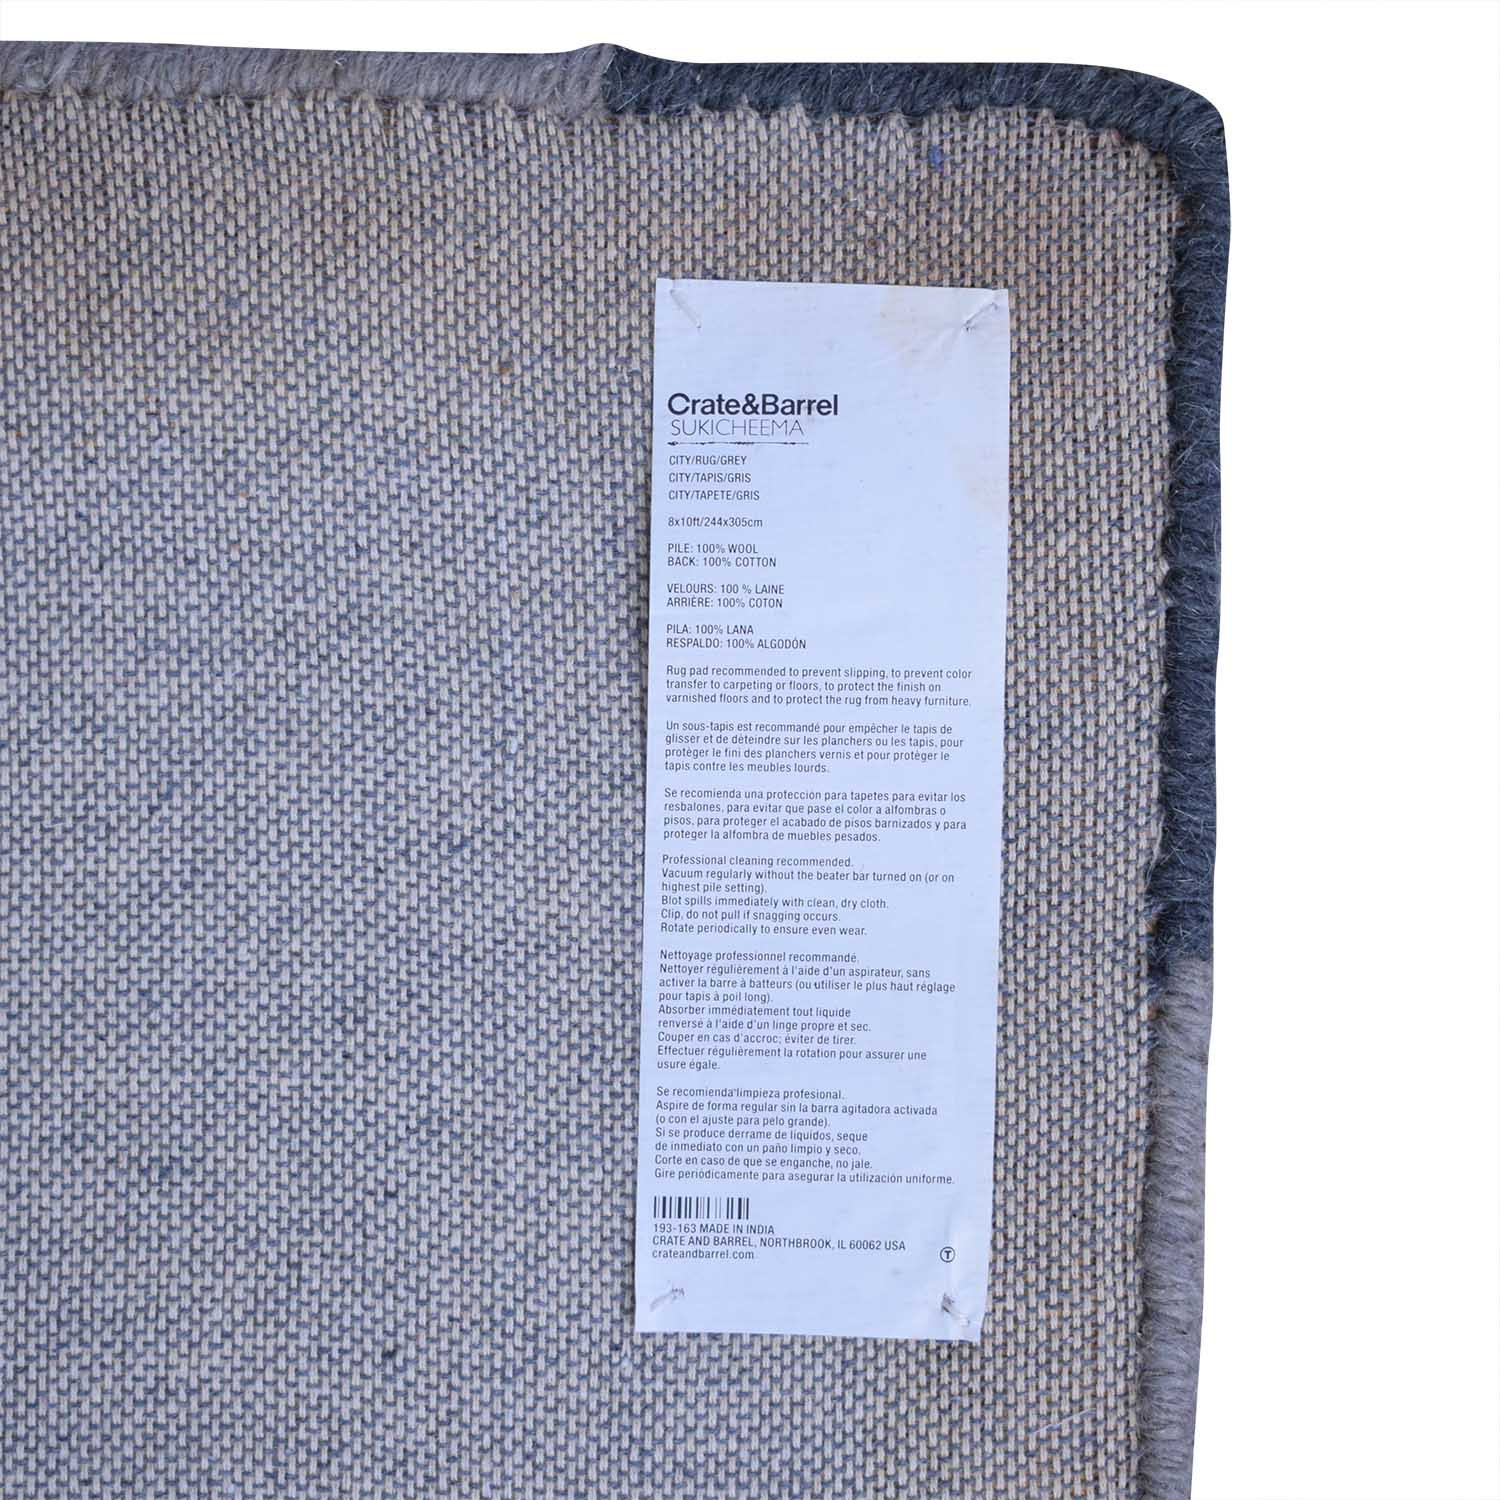 Crate & Barrel Crate & Barrel Sukicheema City Grey Rug Decor